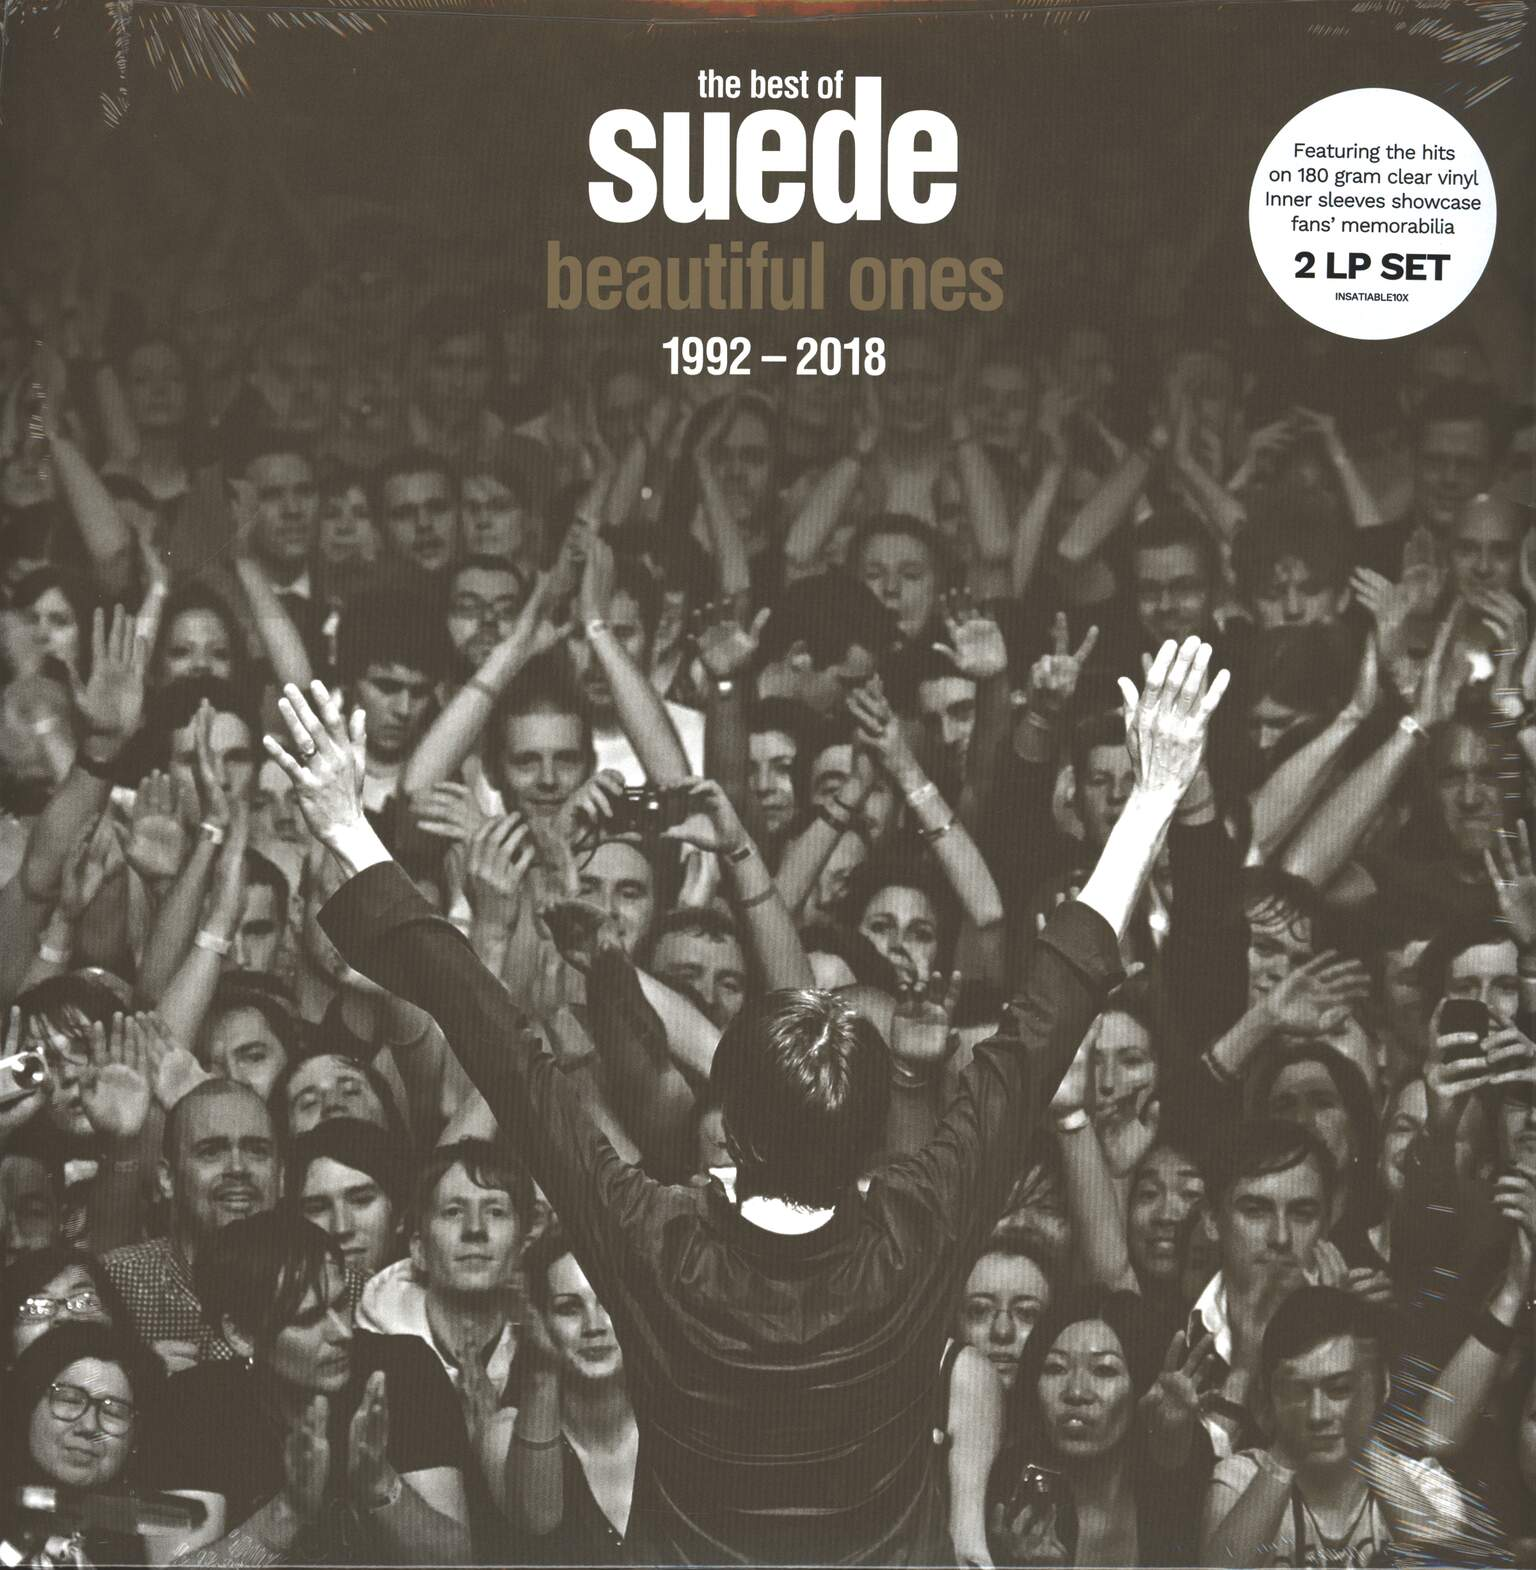 Suede: The Best Of Suede. Beautiful Ones. 1992-2018, 2×LP (Vinyl)